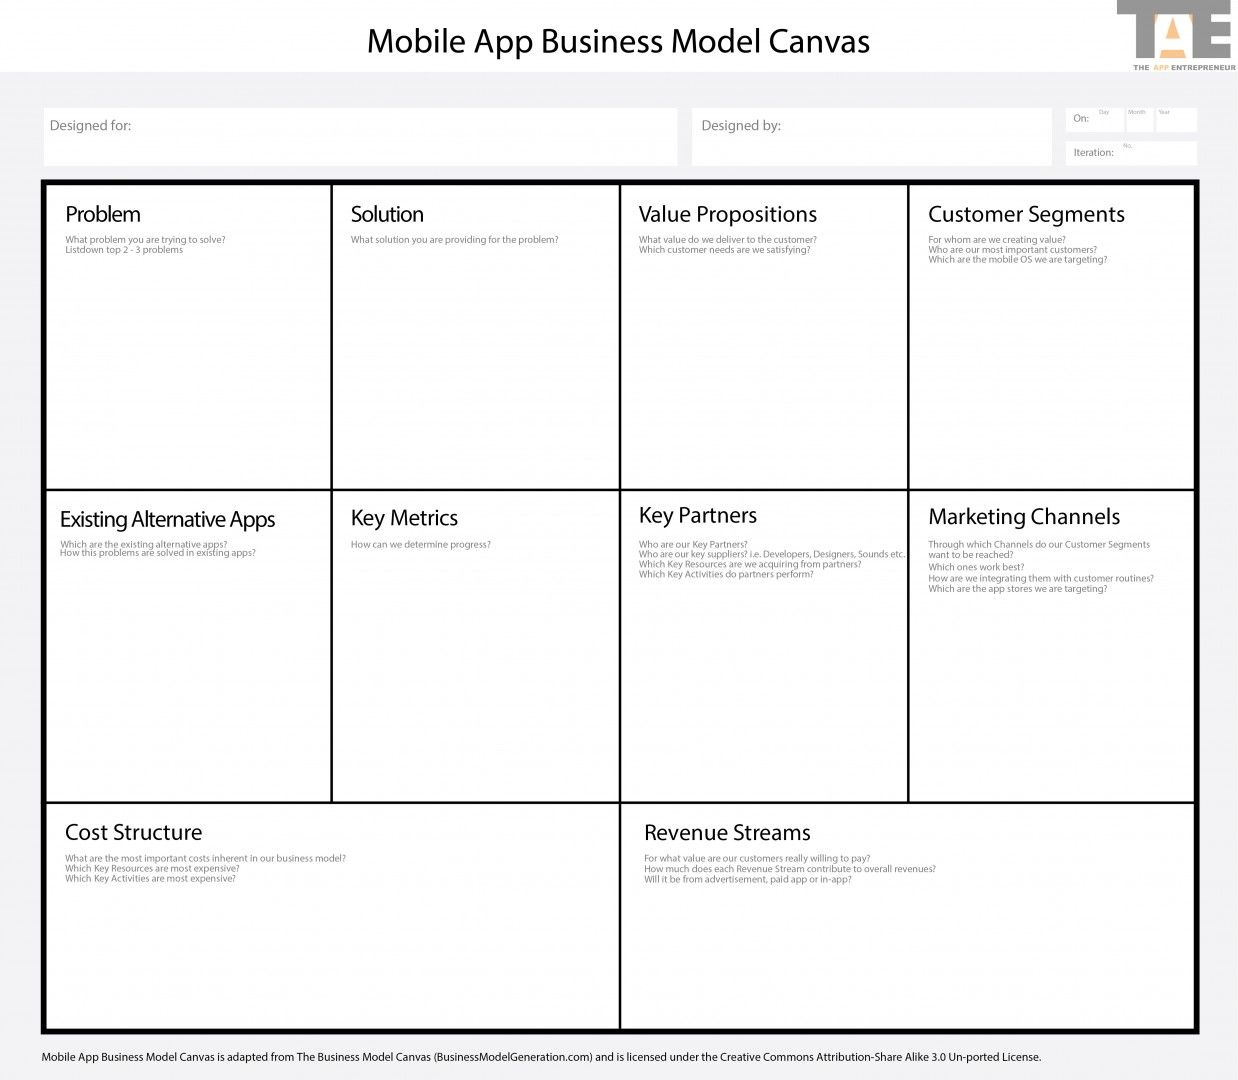 App Business Model Canvas With Images Business Model Canvas